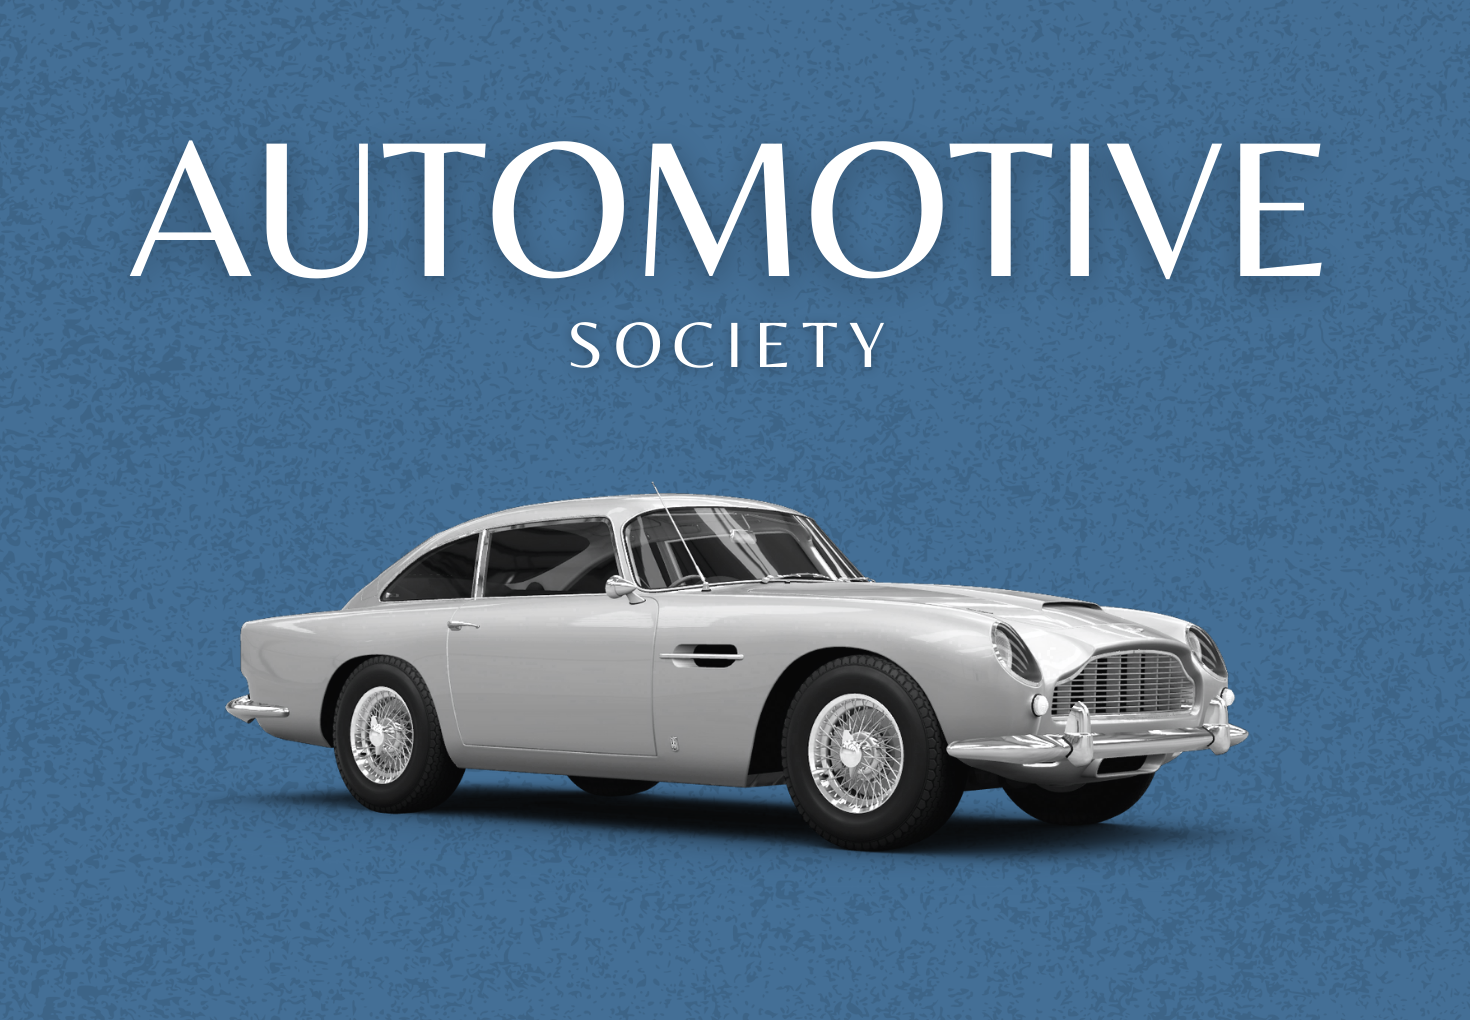 Automotive Society-2.png